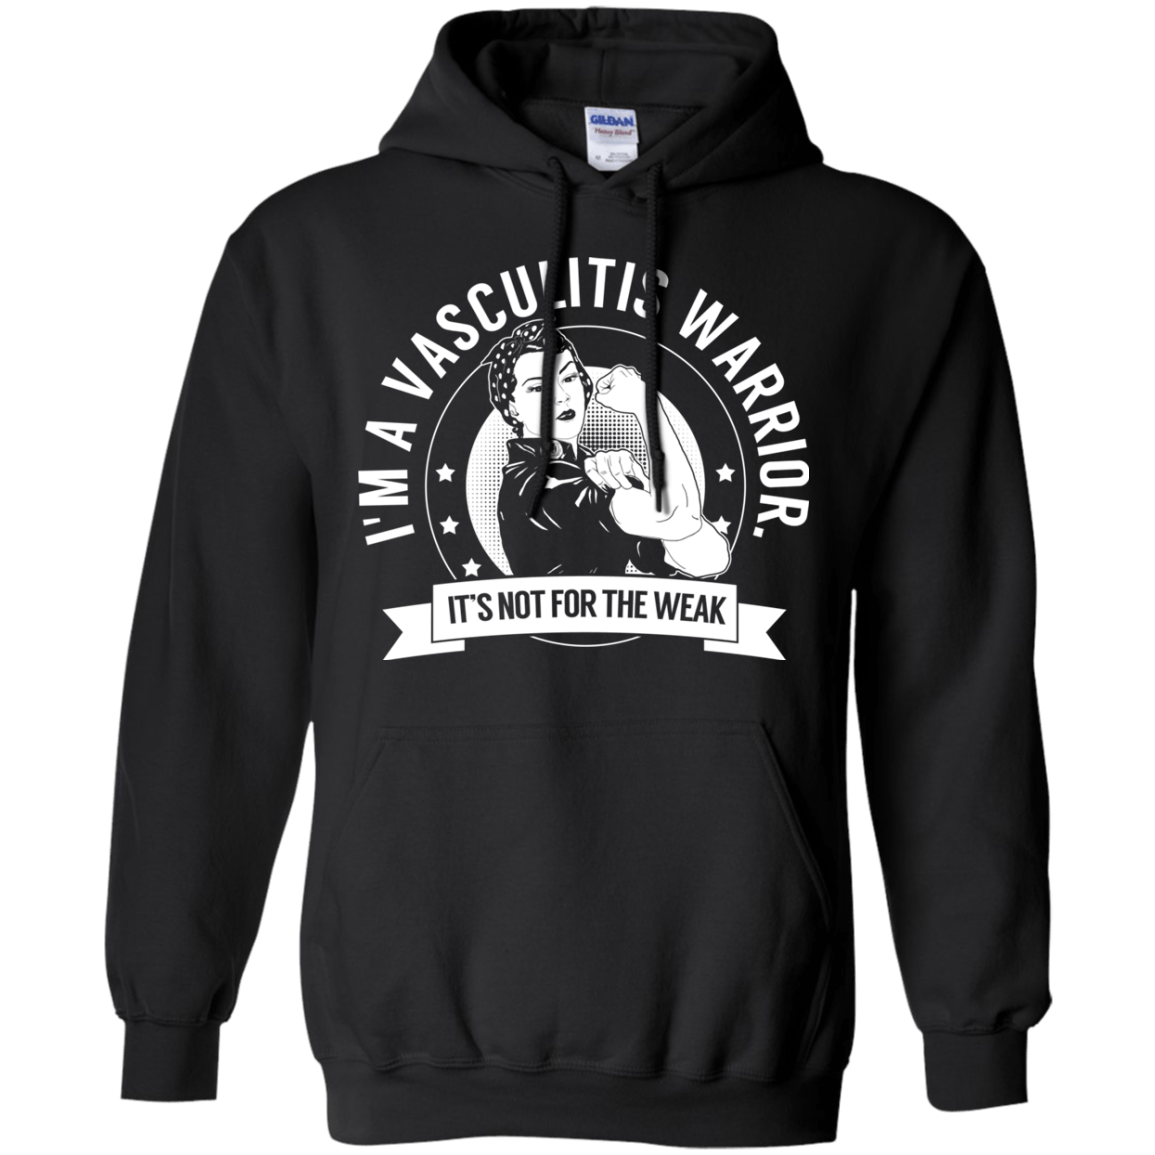 Sweatshirts - Vasculitis Warrior Not For The Weak Pullover Hoodie 8 Oz.